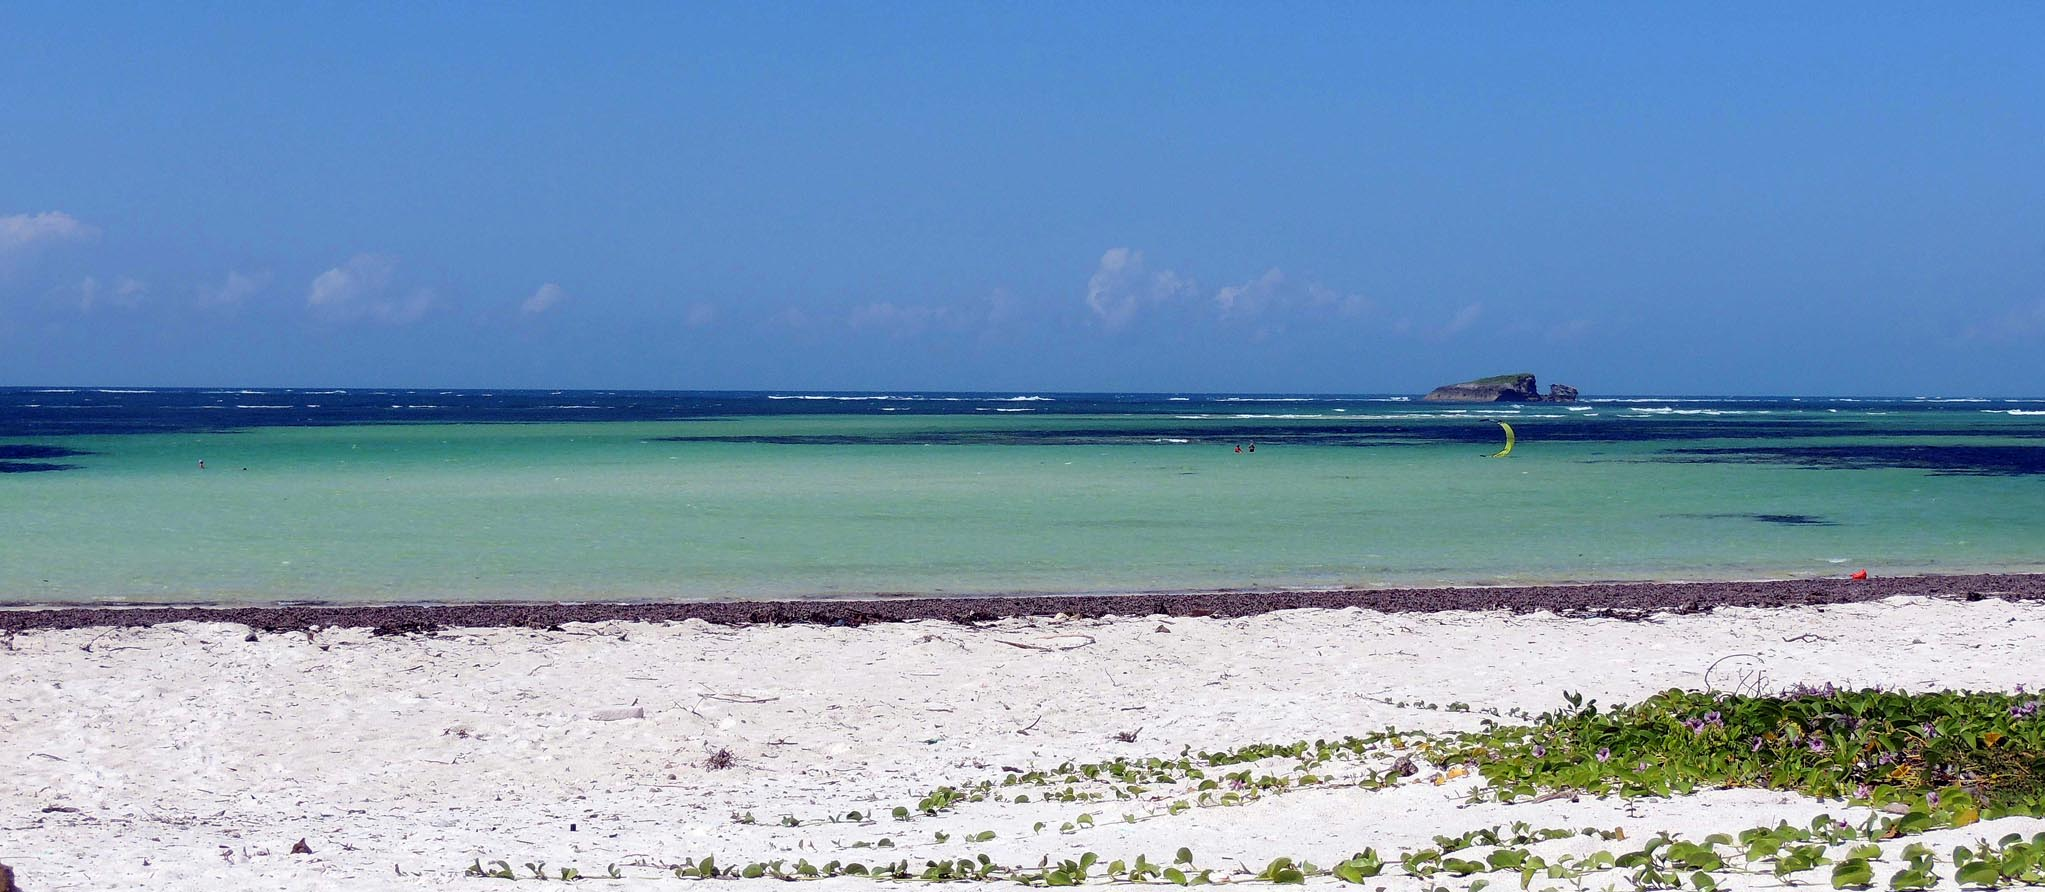 Tribe Watersports - Watamu Kenya - Kitesurfing - Wakeboarding - Stand Up Paddleboarding - About the location - location pic copy1